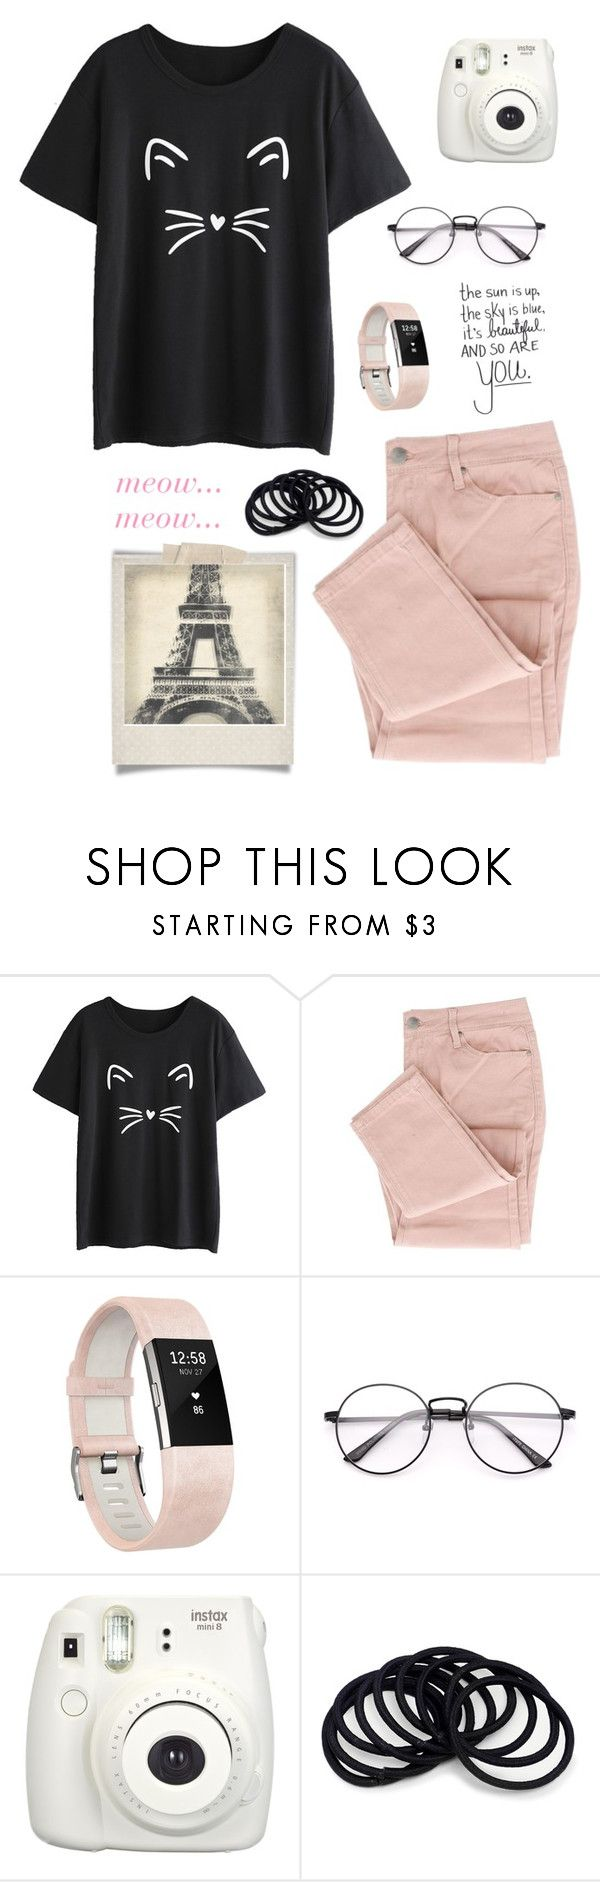 """""""i may be a nerd but im lovable..."""" by at-39thst-fashion ❤ liked on Polyvore featuring Fitbit, Fujifilm, Polaroid and Leftbank Art"""